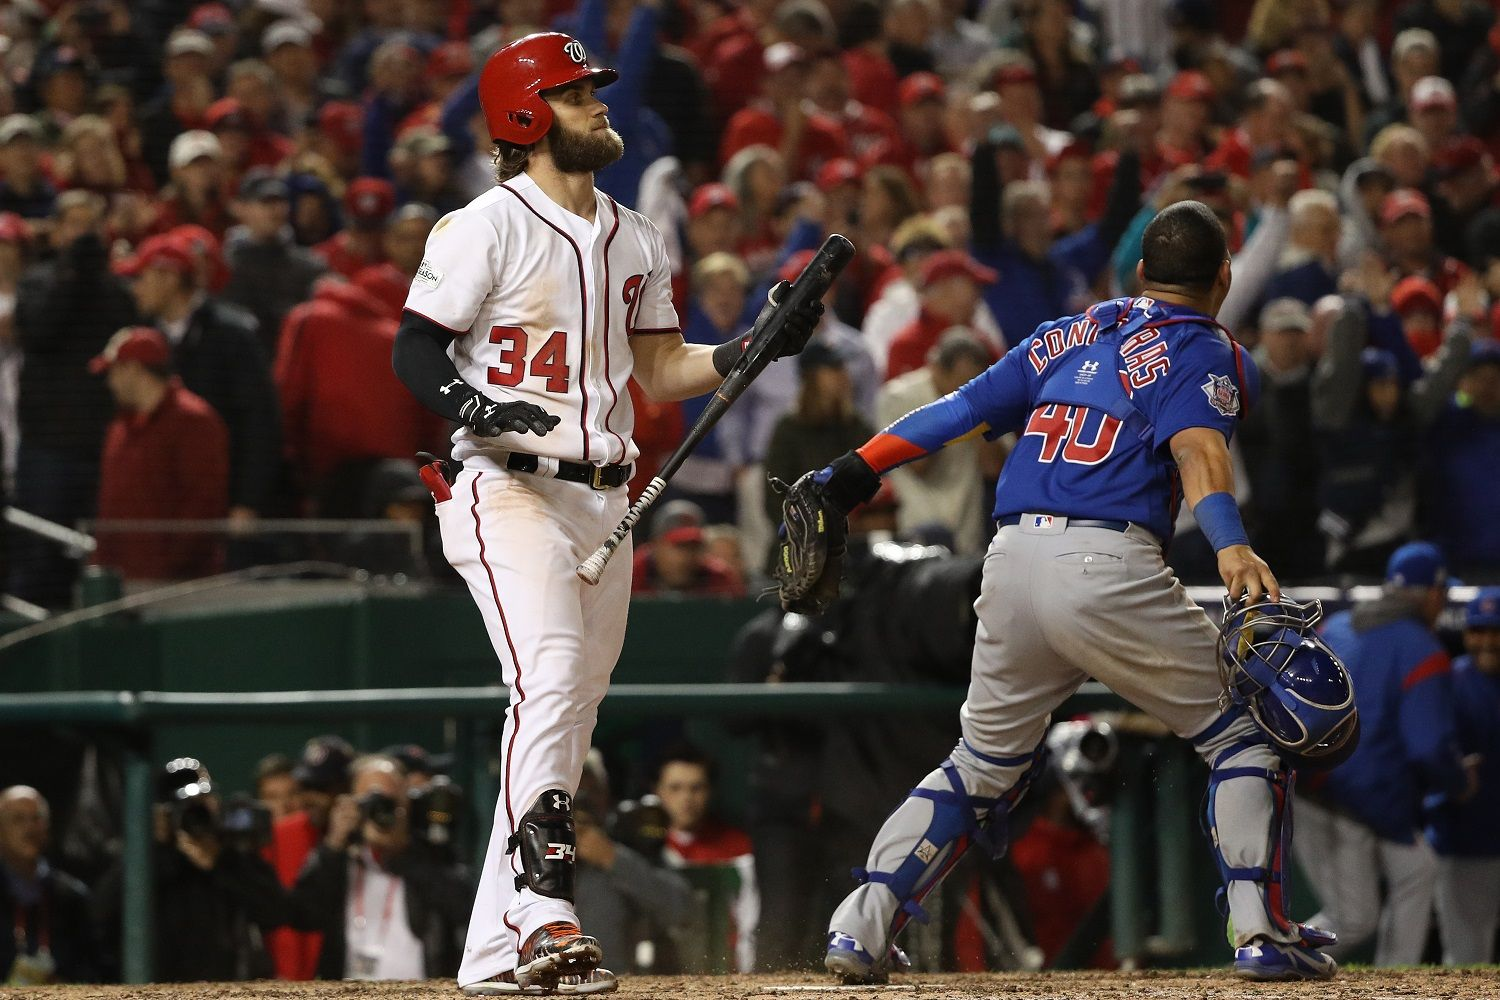 WASHINGTON, DC - OCTOBER 13: Bryce Harper #34 of the Washington Nationals strikes out for the final out of the game against the Chicago Cubs in game five of the National League Division Series at Nationals Park on October 13, 2017 in Washington, DC. (Photo by Patrick Smith/Getty Images)